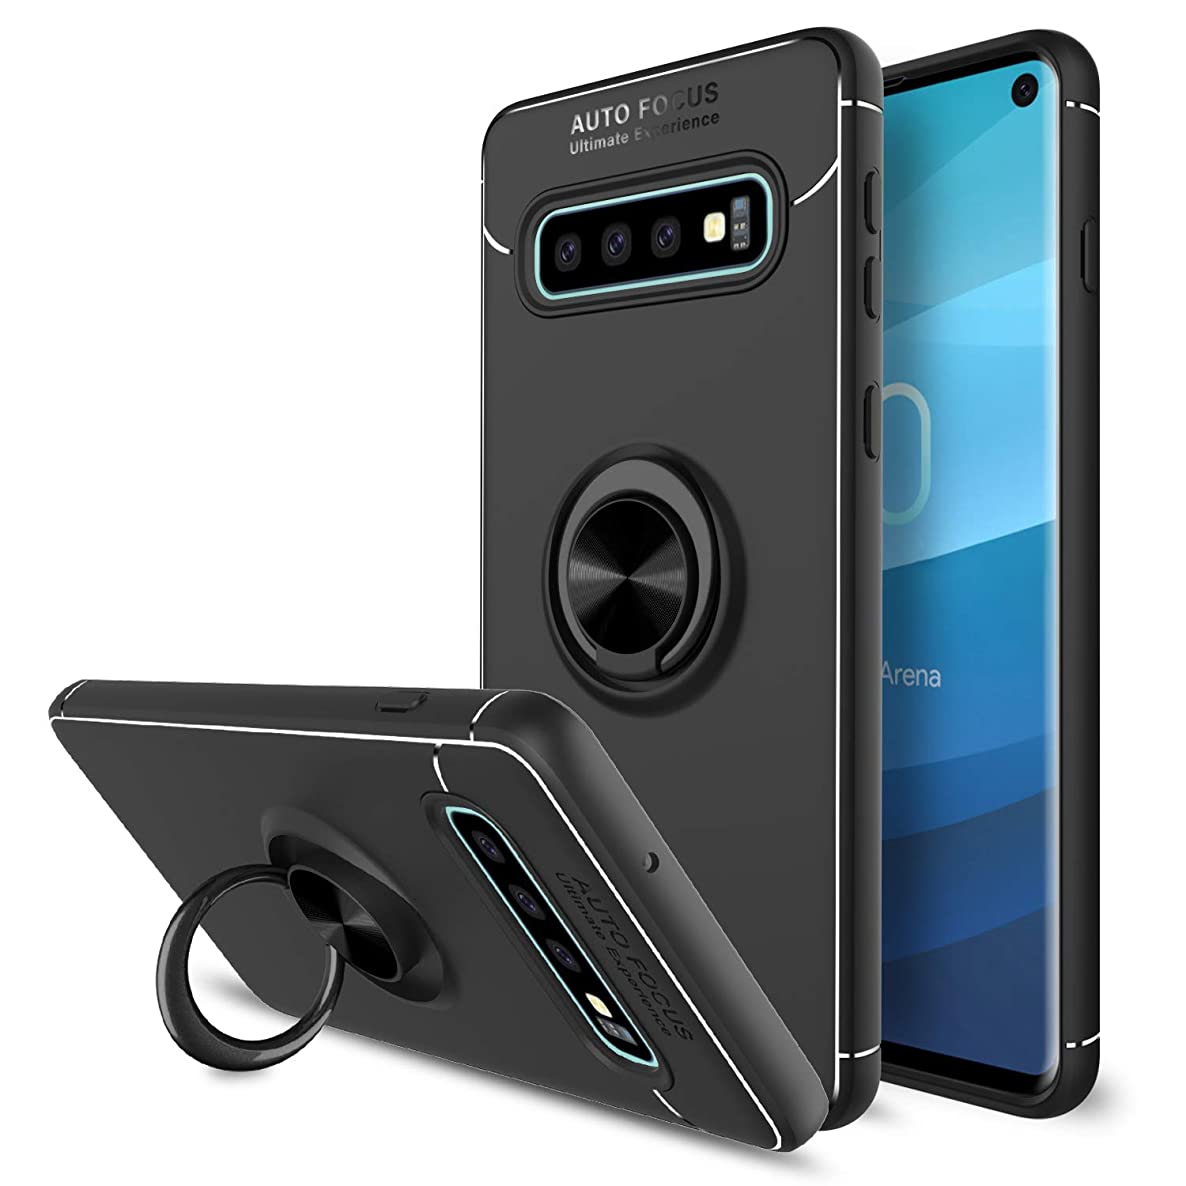 Galaxy S10 Case, Elegant Choise 360 Degree Rotating Ring Holder Stand Hybrid Slim Soft TPU Scratch Resistant Protective Case Fit Magnetic Car Mount Cover for Samsung Galaxy S10 6.1 inch(Black)